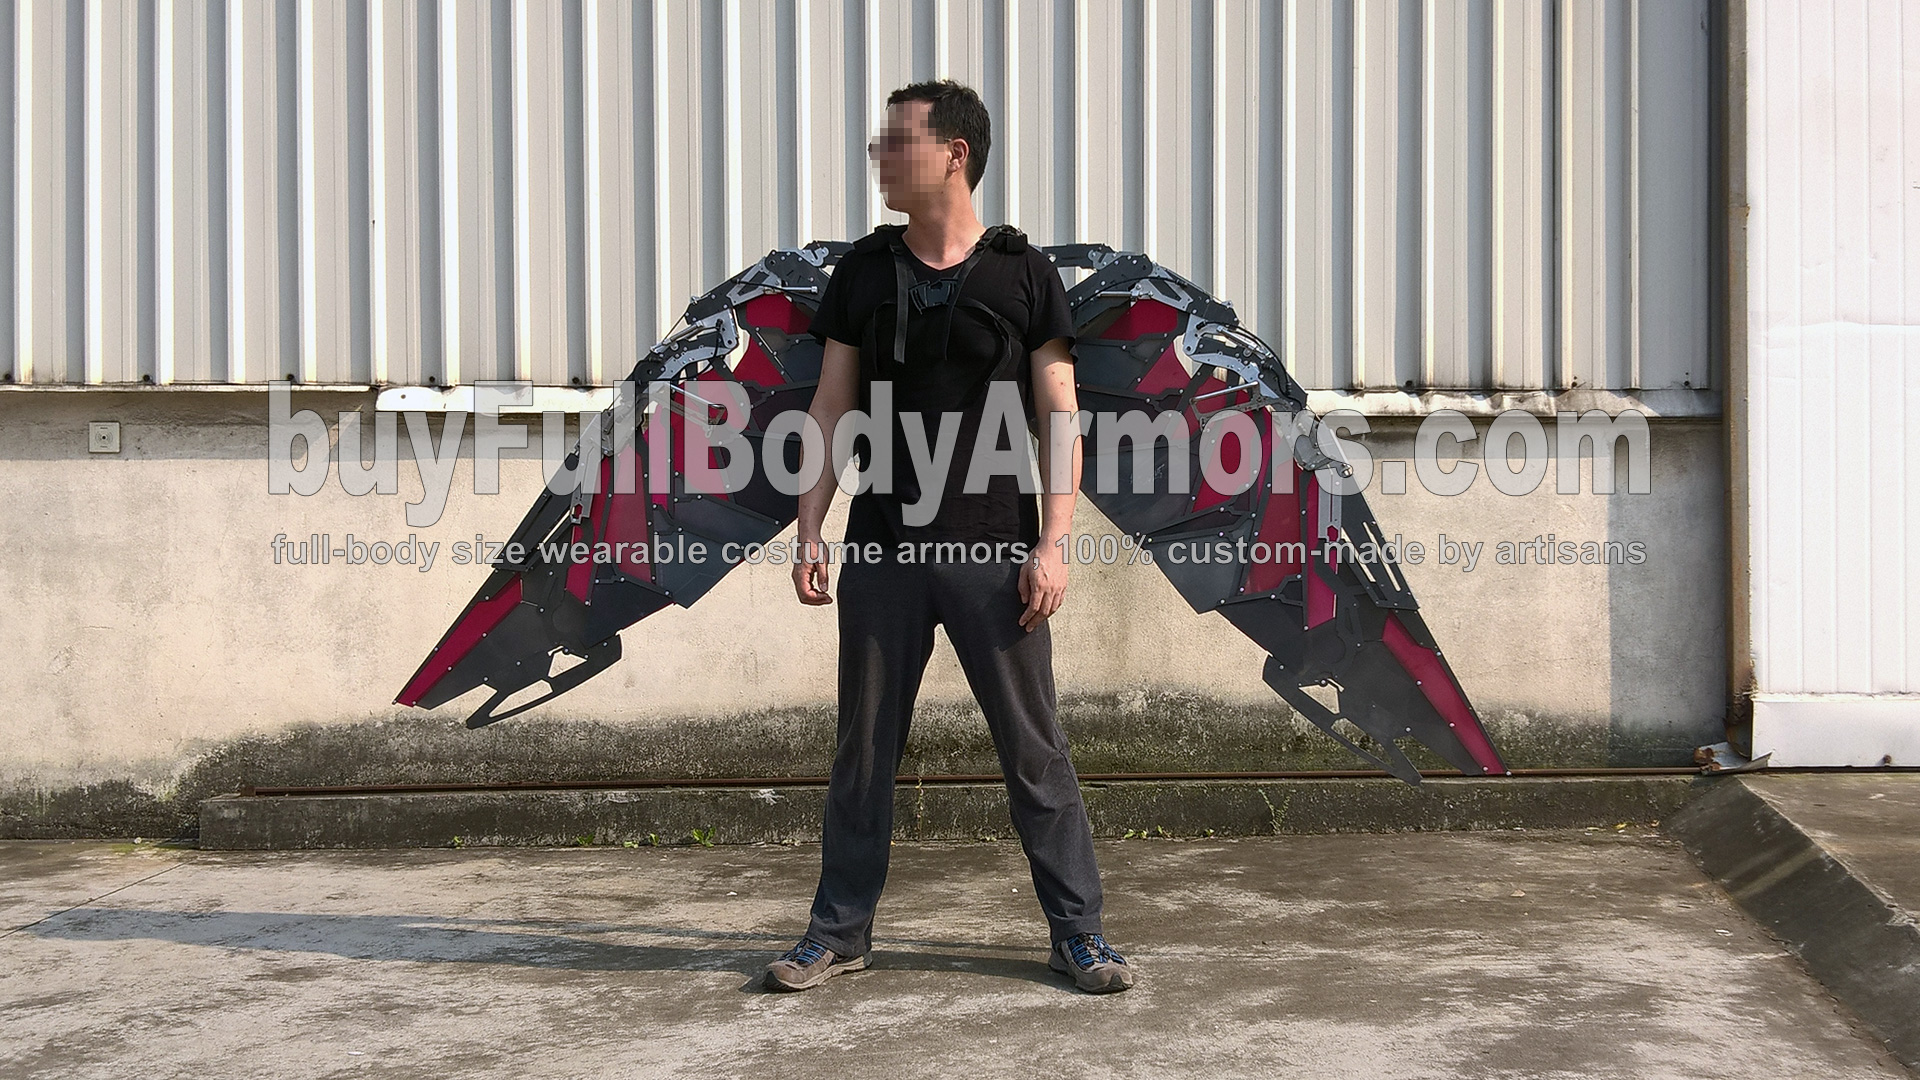 The Avengers 2 Wearable Falcon Suit Prototype - Wings Expanded and Retracted